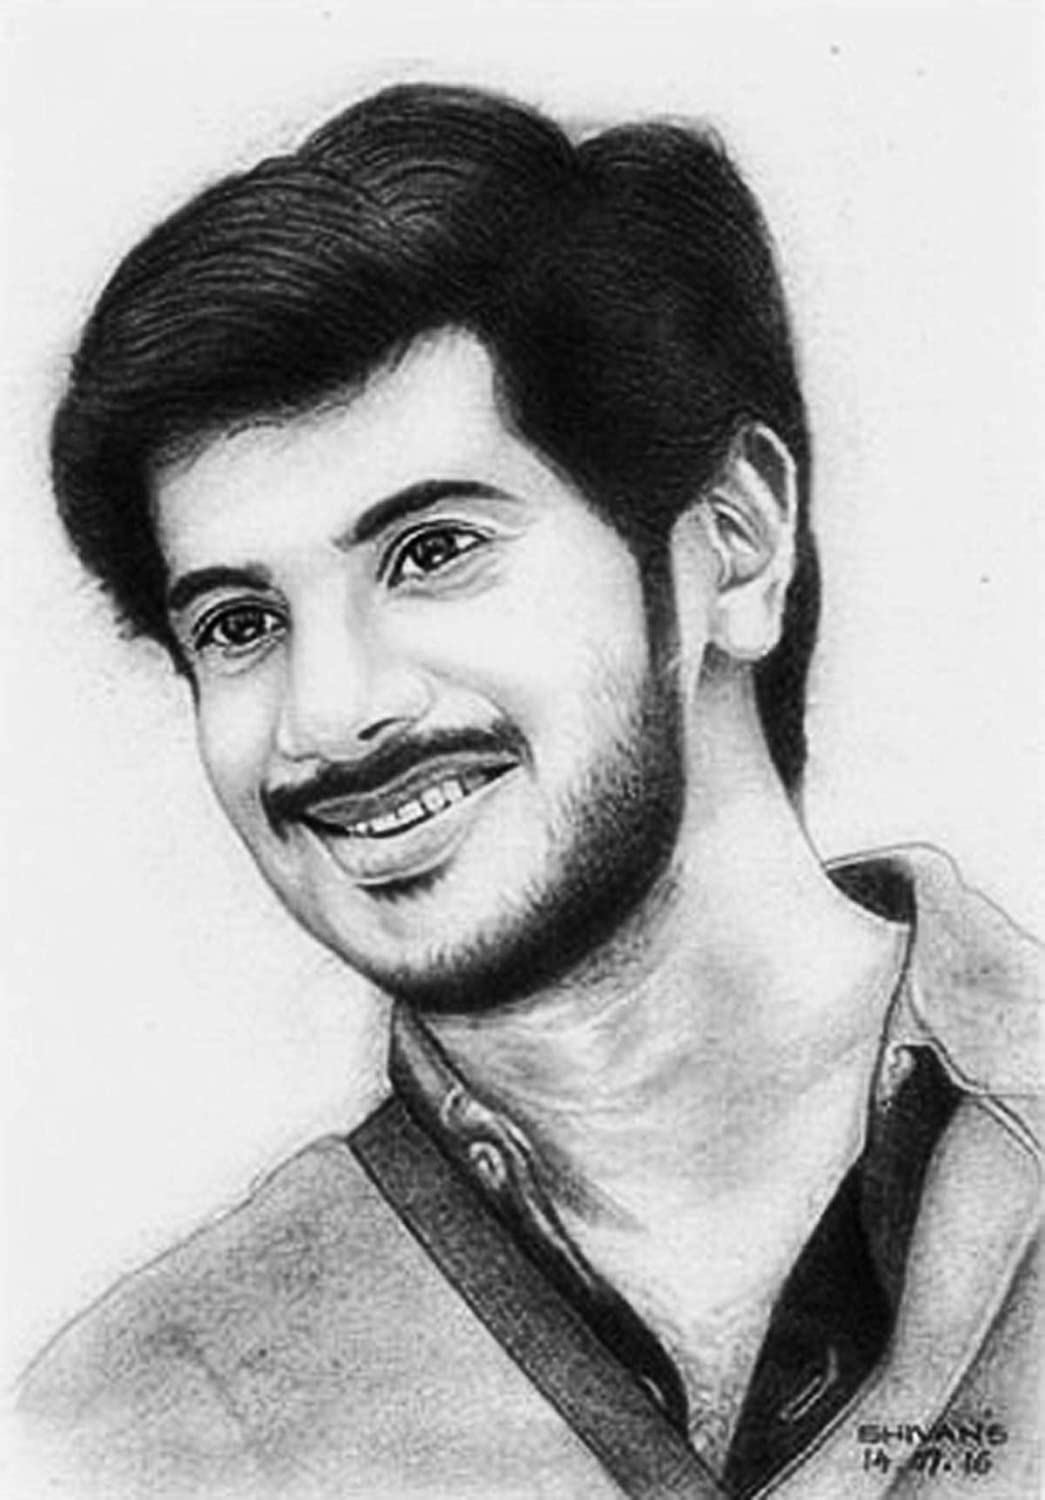 Buy dulquer salman indian film actor online at low prices in india